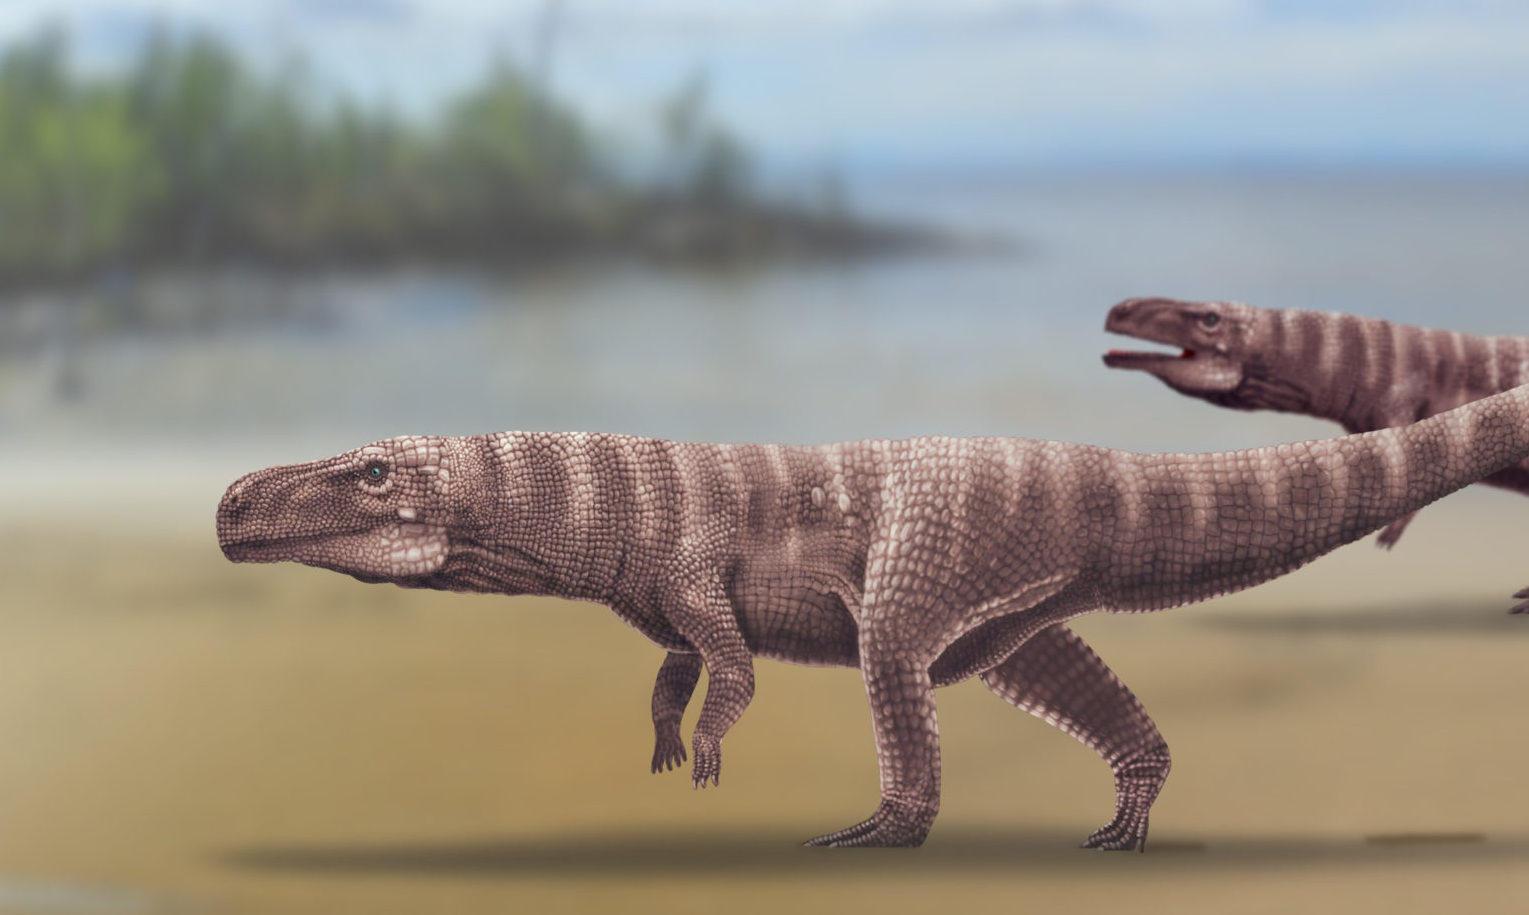 An artist's impression of the ancient crocodile species thought to have made the footprints discovered at the Sacheon Jahye-ri site in South Korea